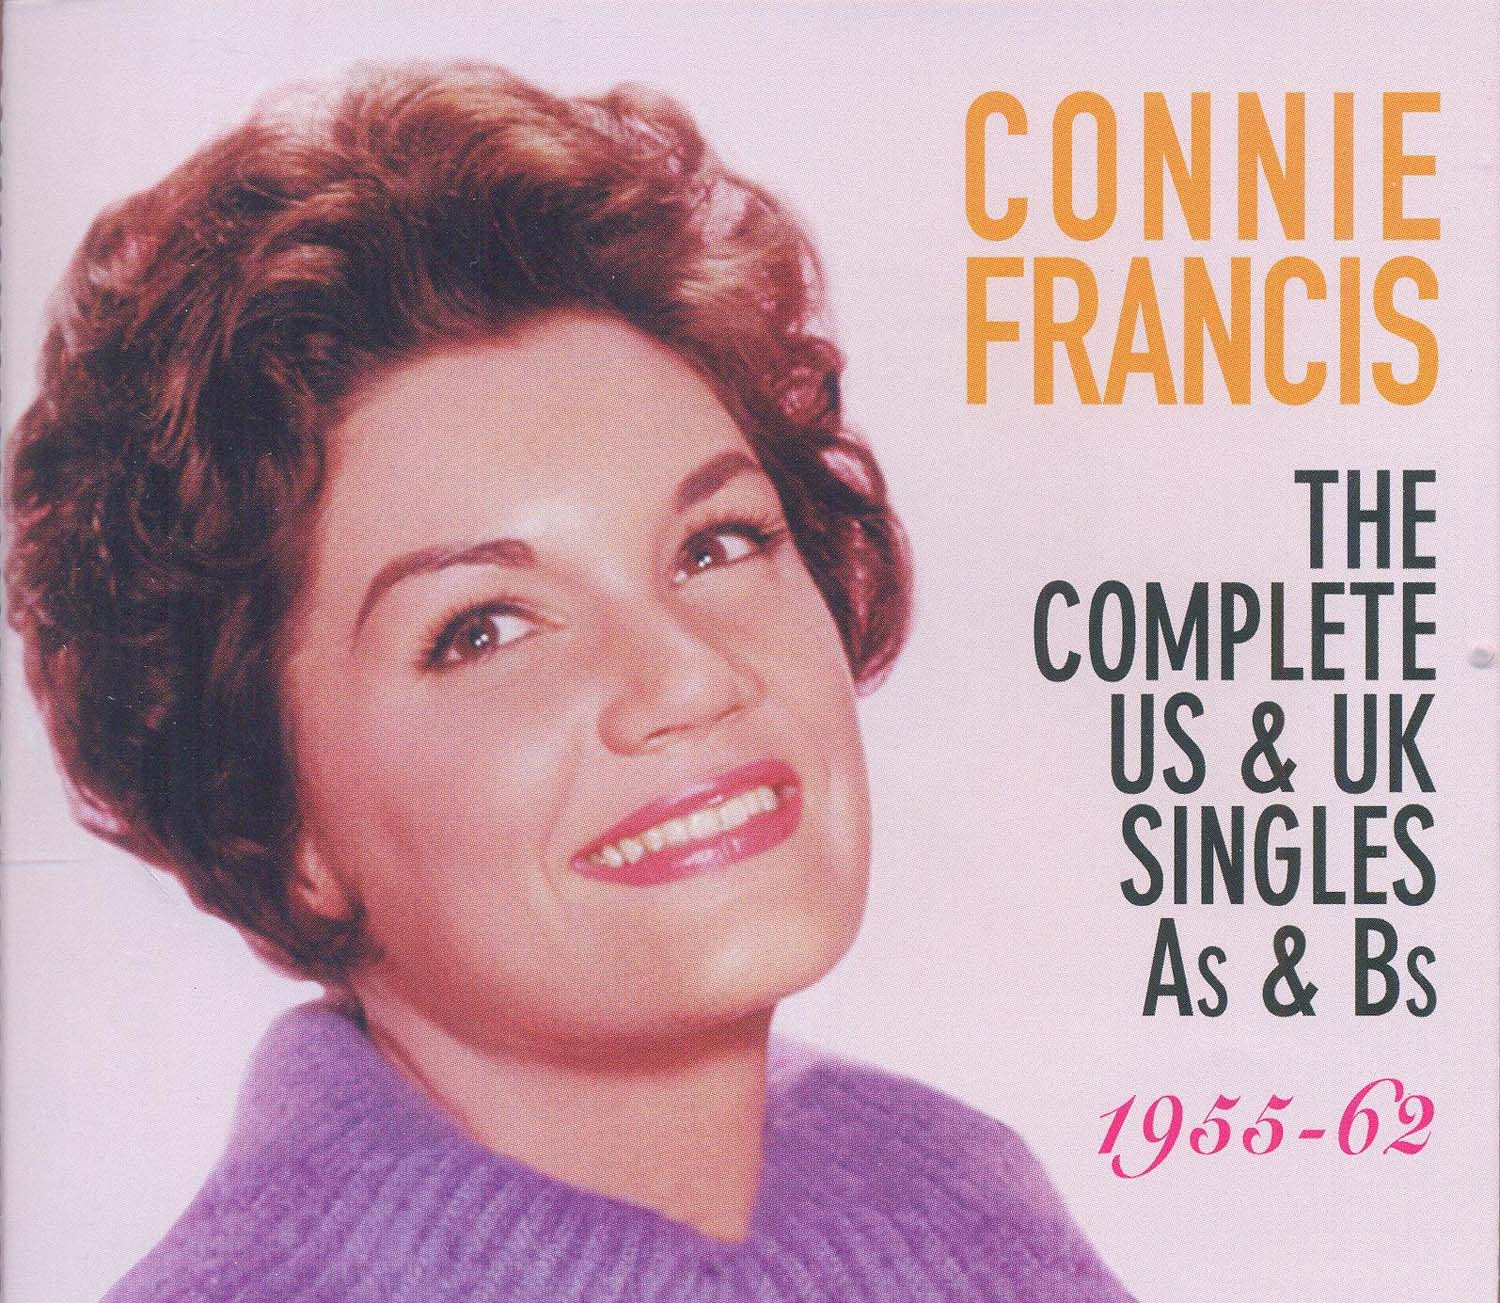 CONNIE FRANCIS - COMPLETE US & UK SINGLES (3 CD) (CD)